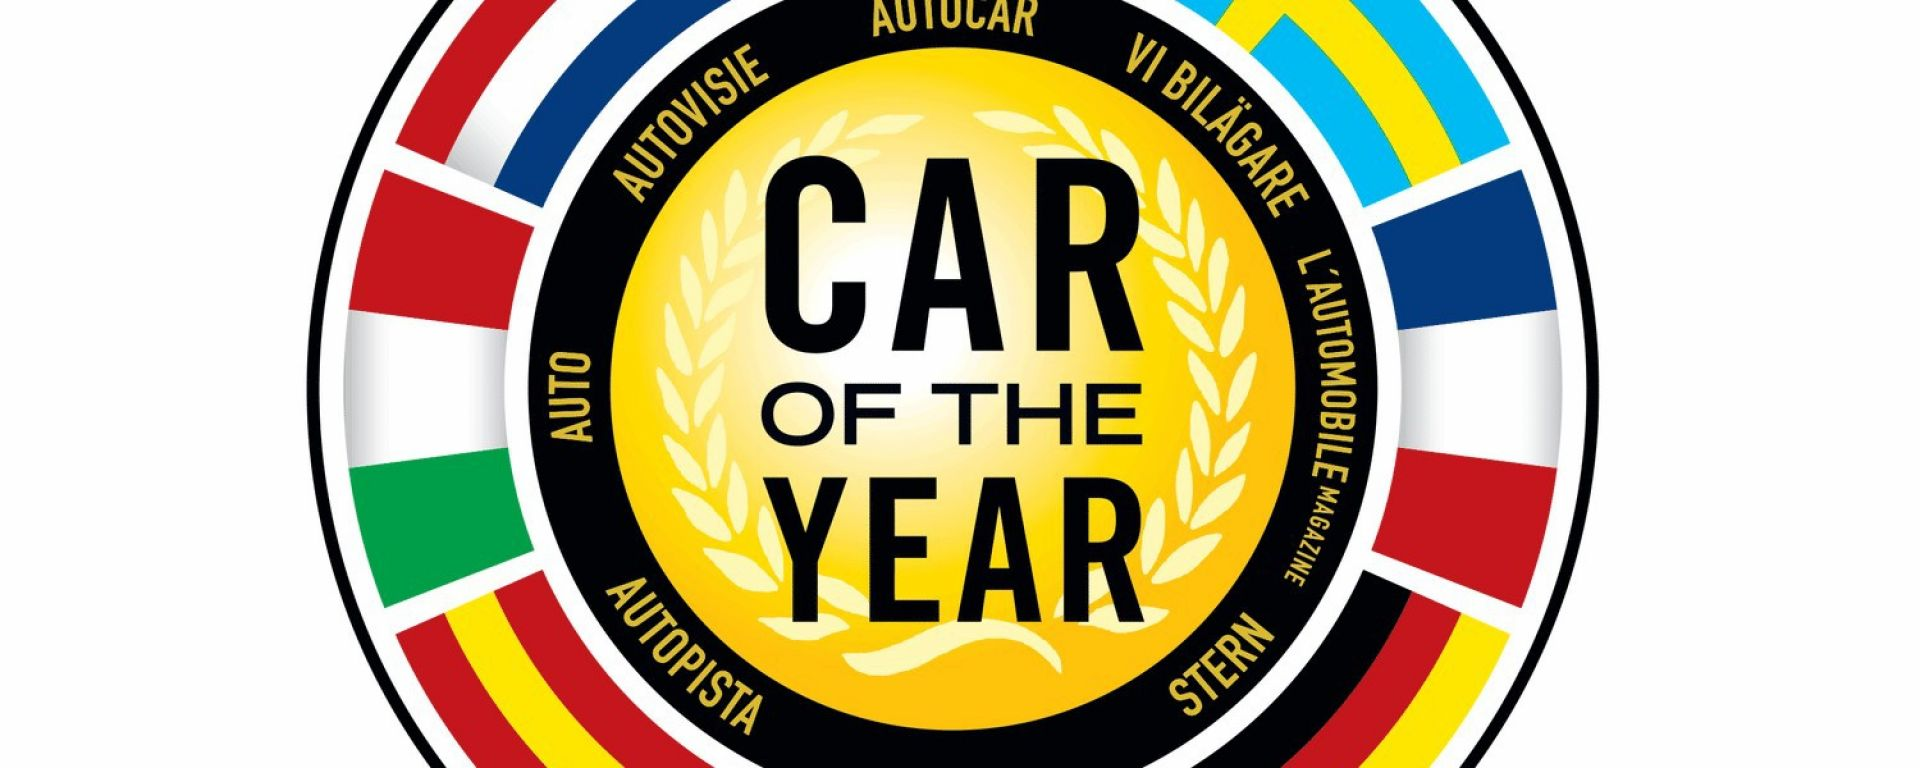 Car of the Year 2015